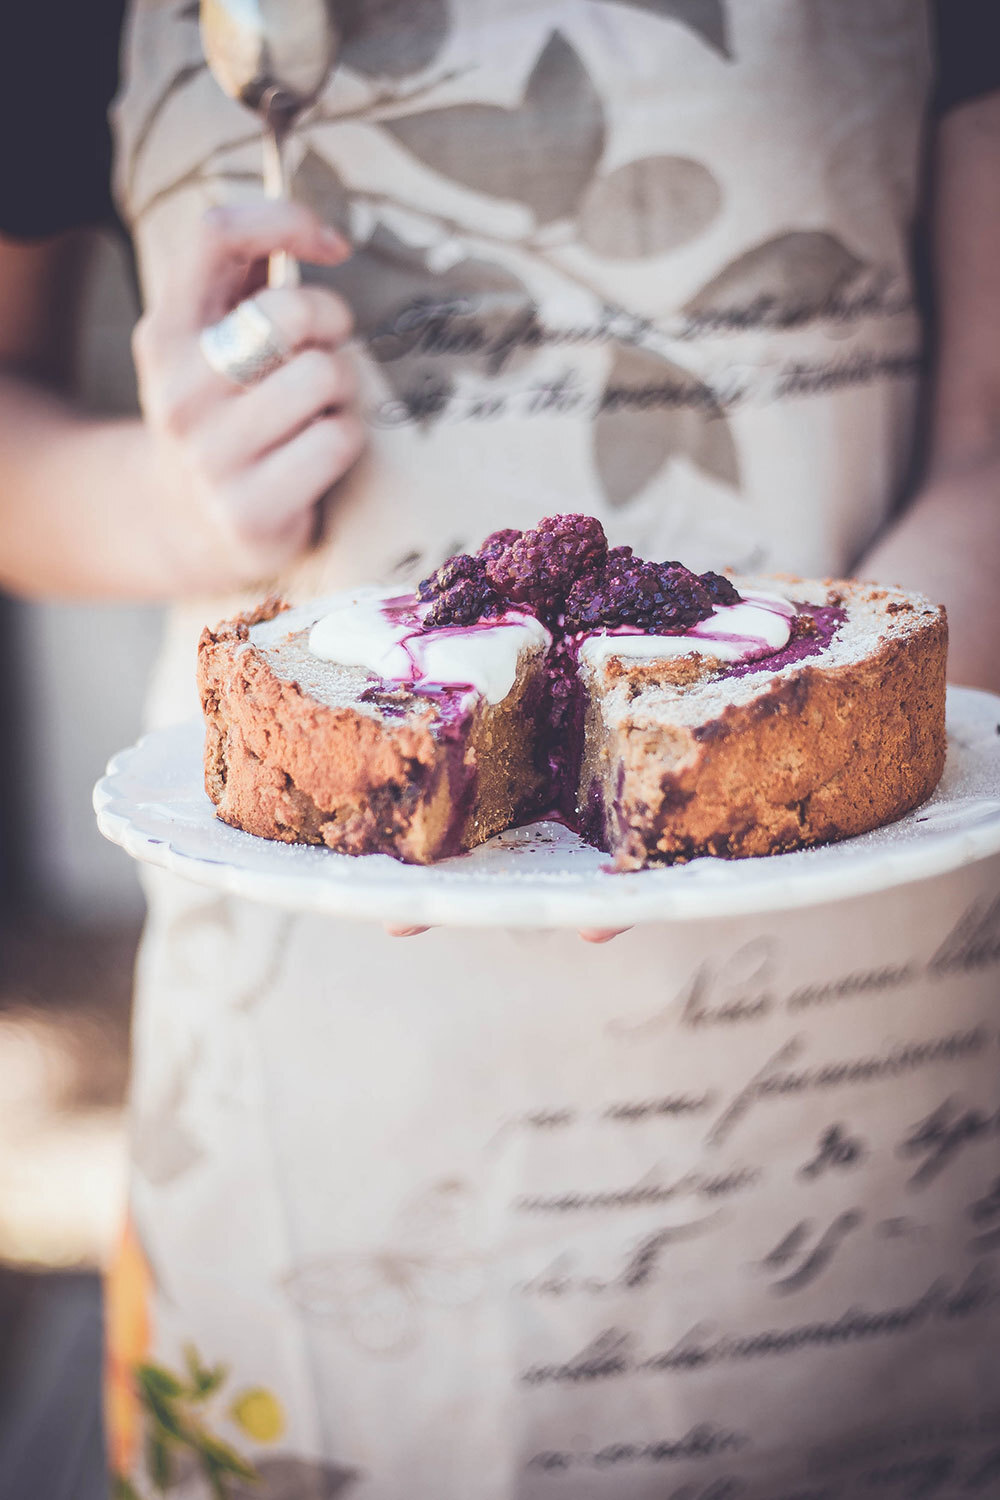 Kumara and boysenberry cake – gluten free